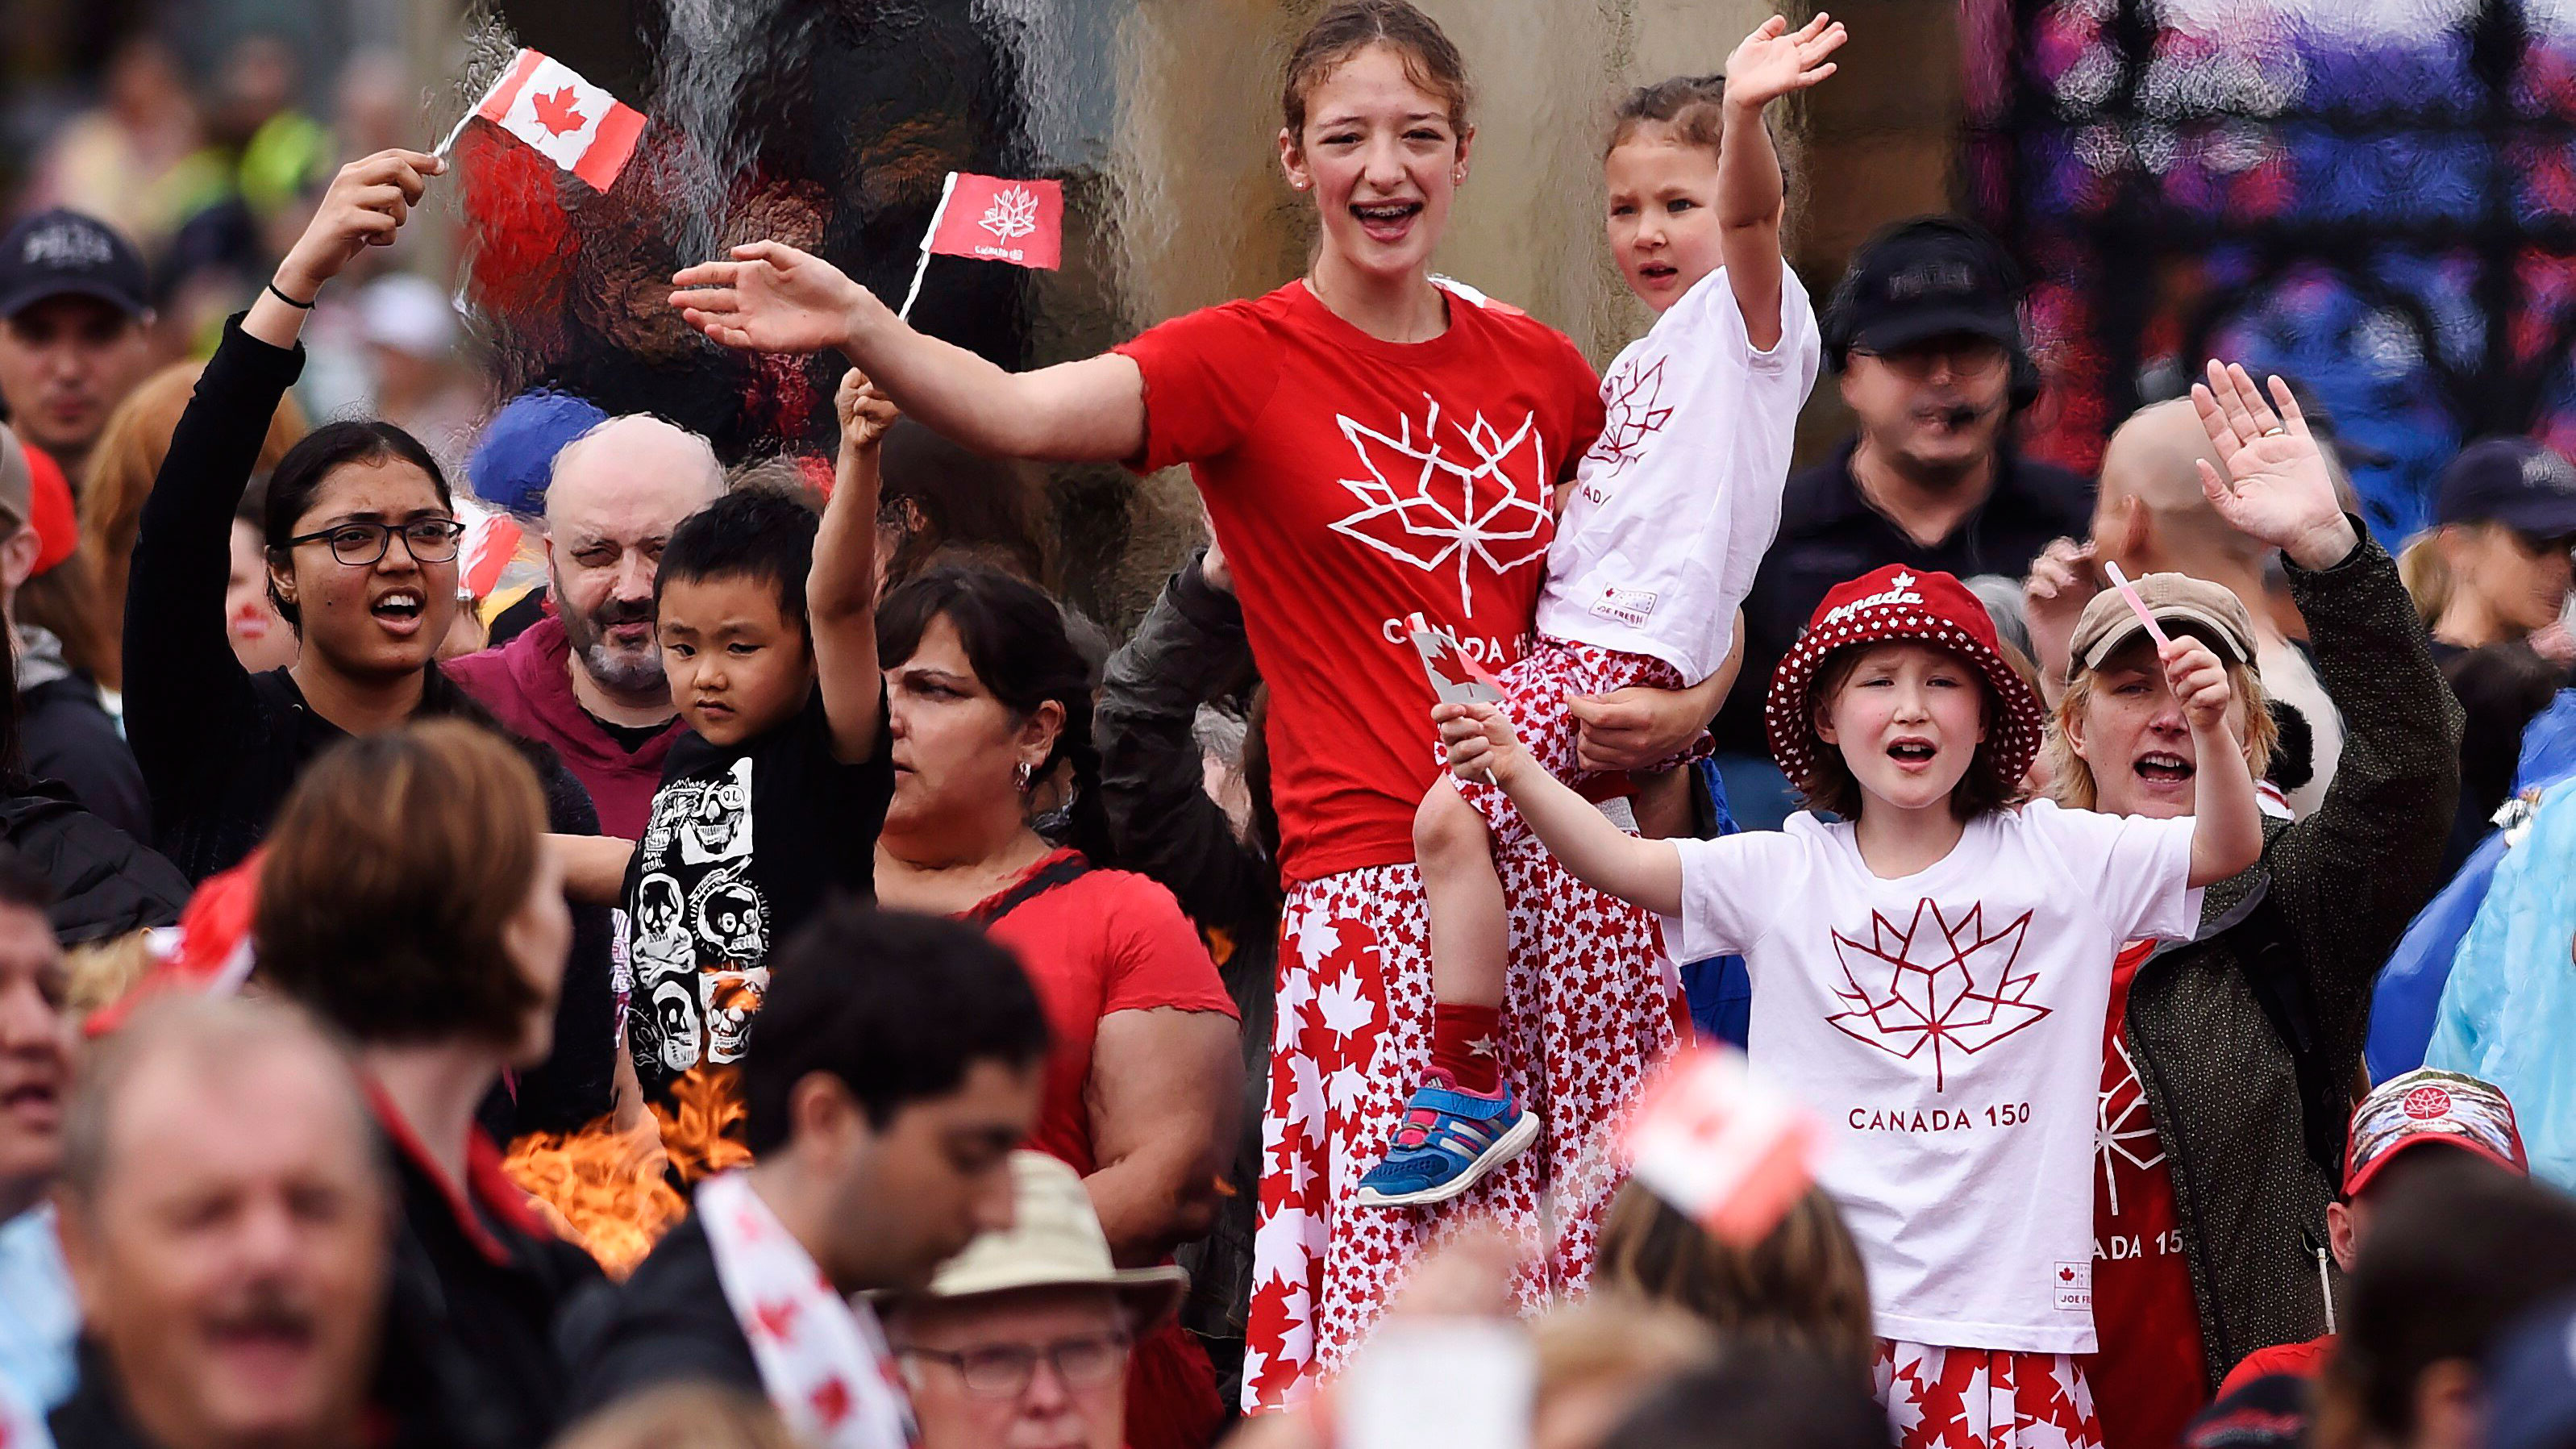 Find something to celebrate this Canada 150